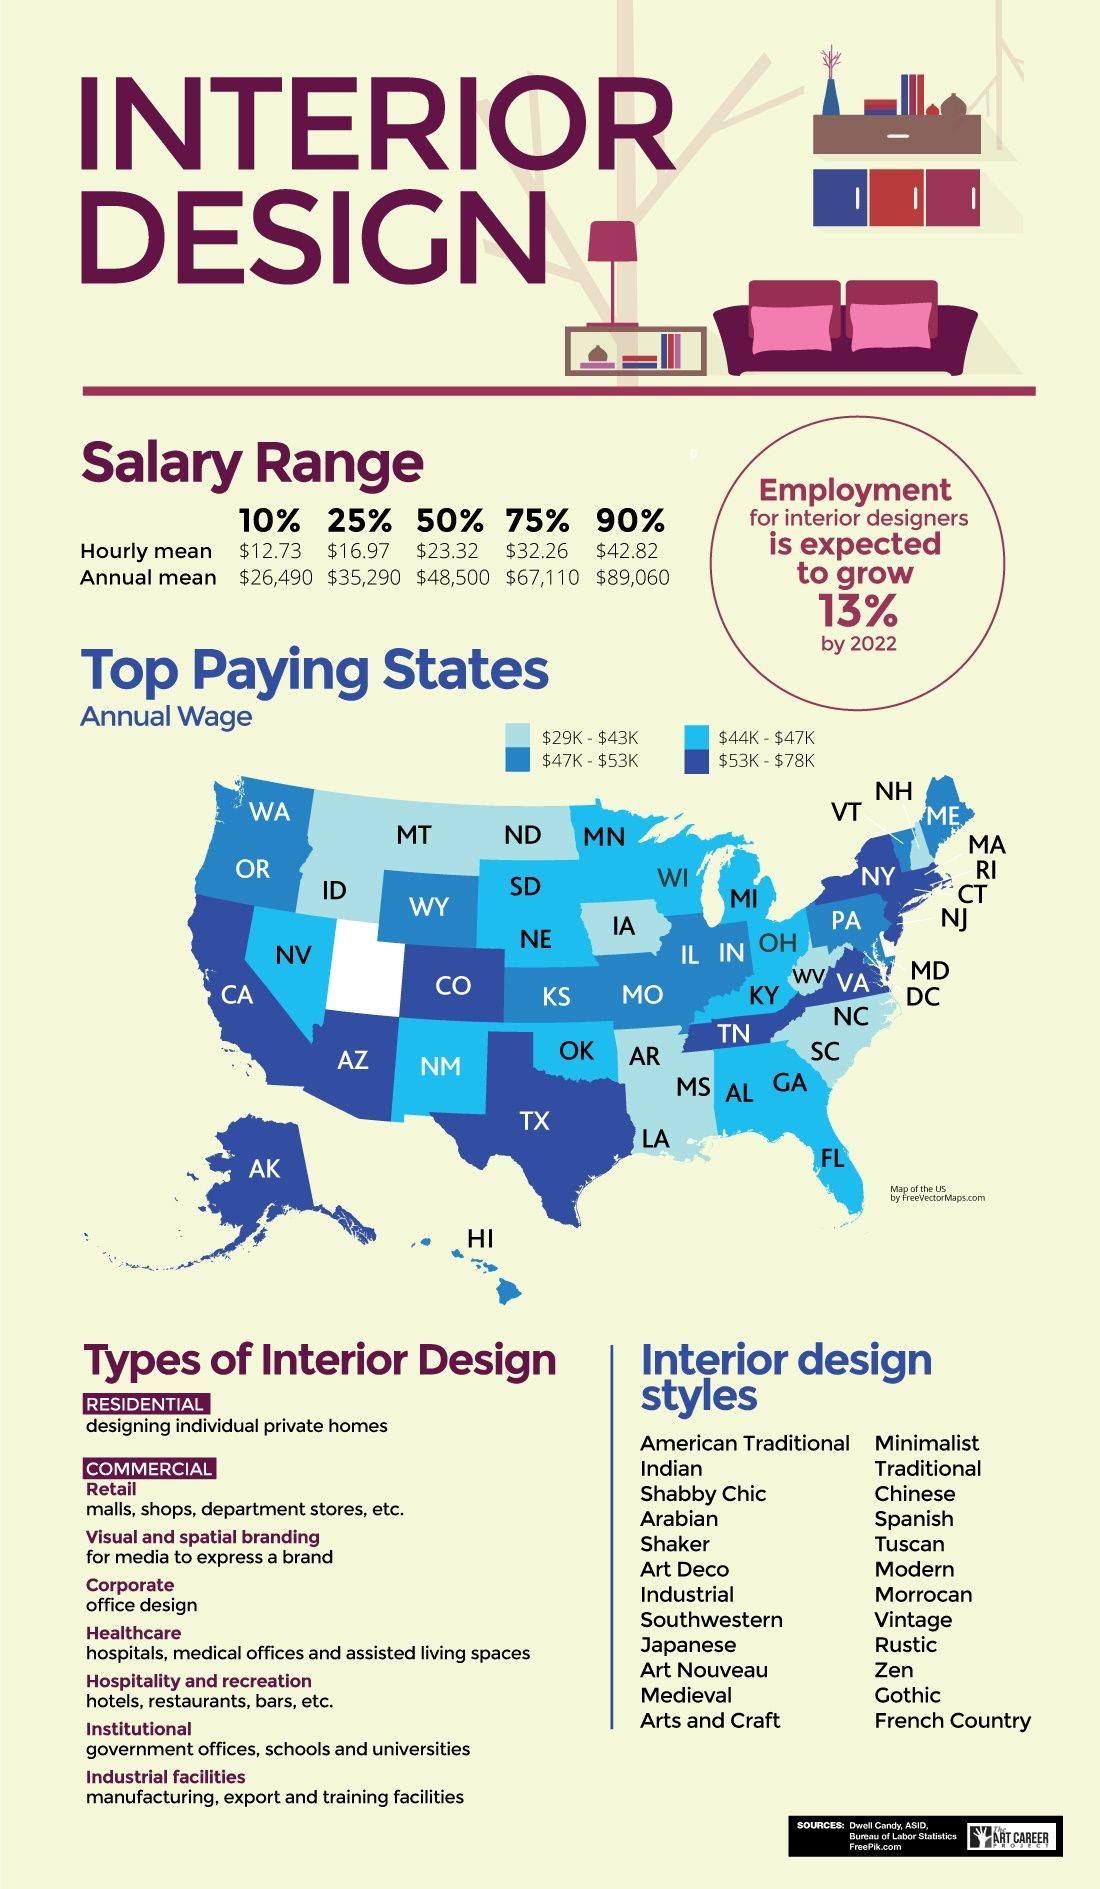 Interior Design And Architecture Schools By Best 25 Career Ideas On Pinterest Resume Tips Job